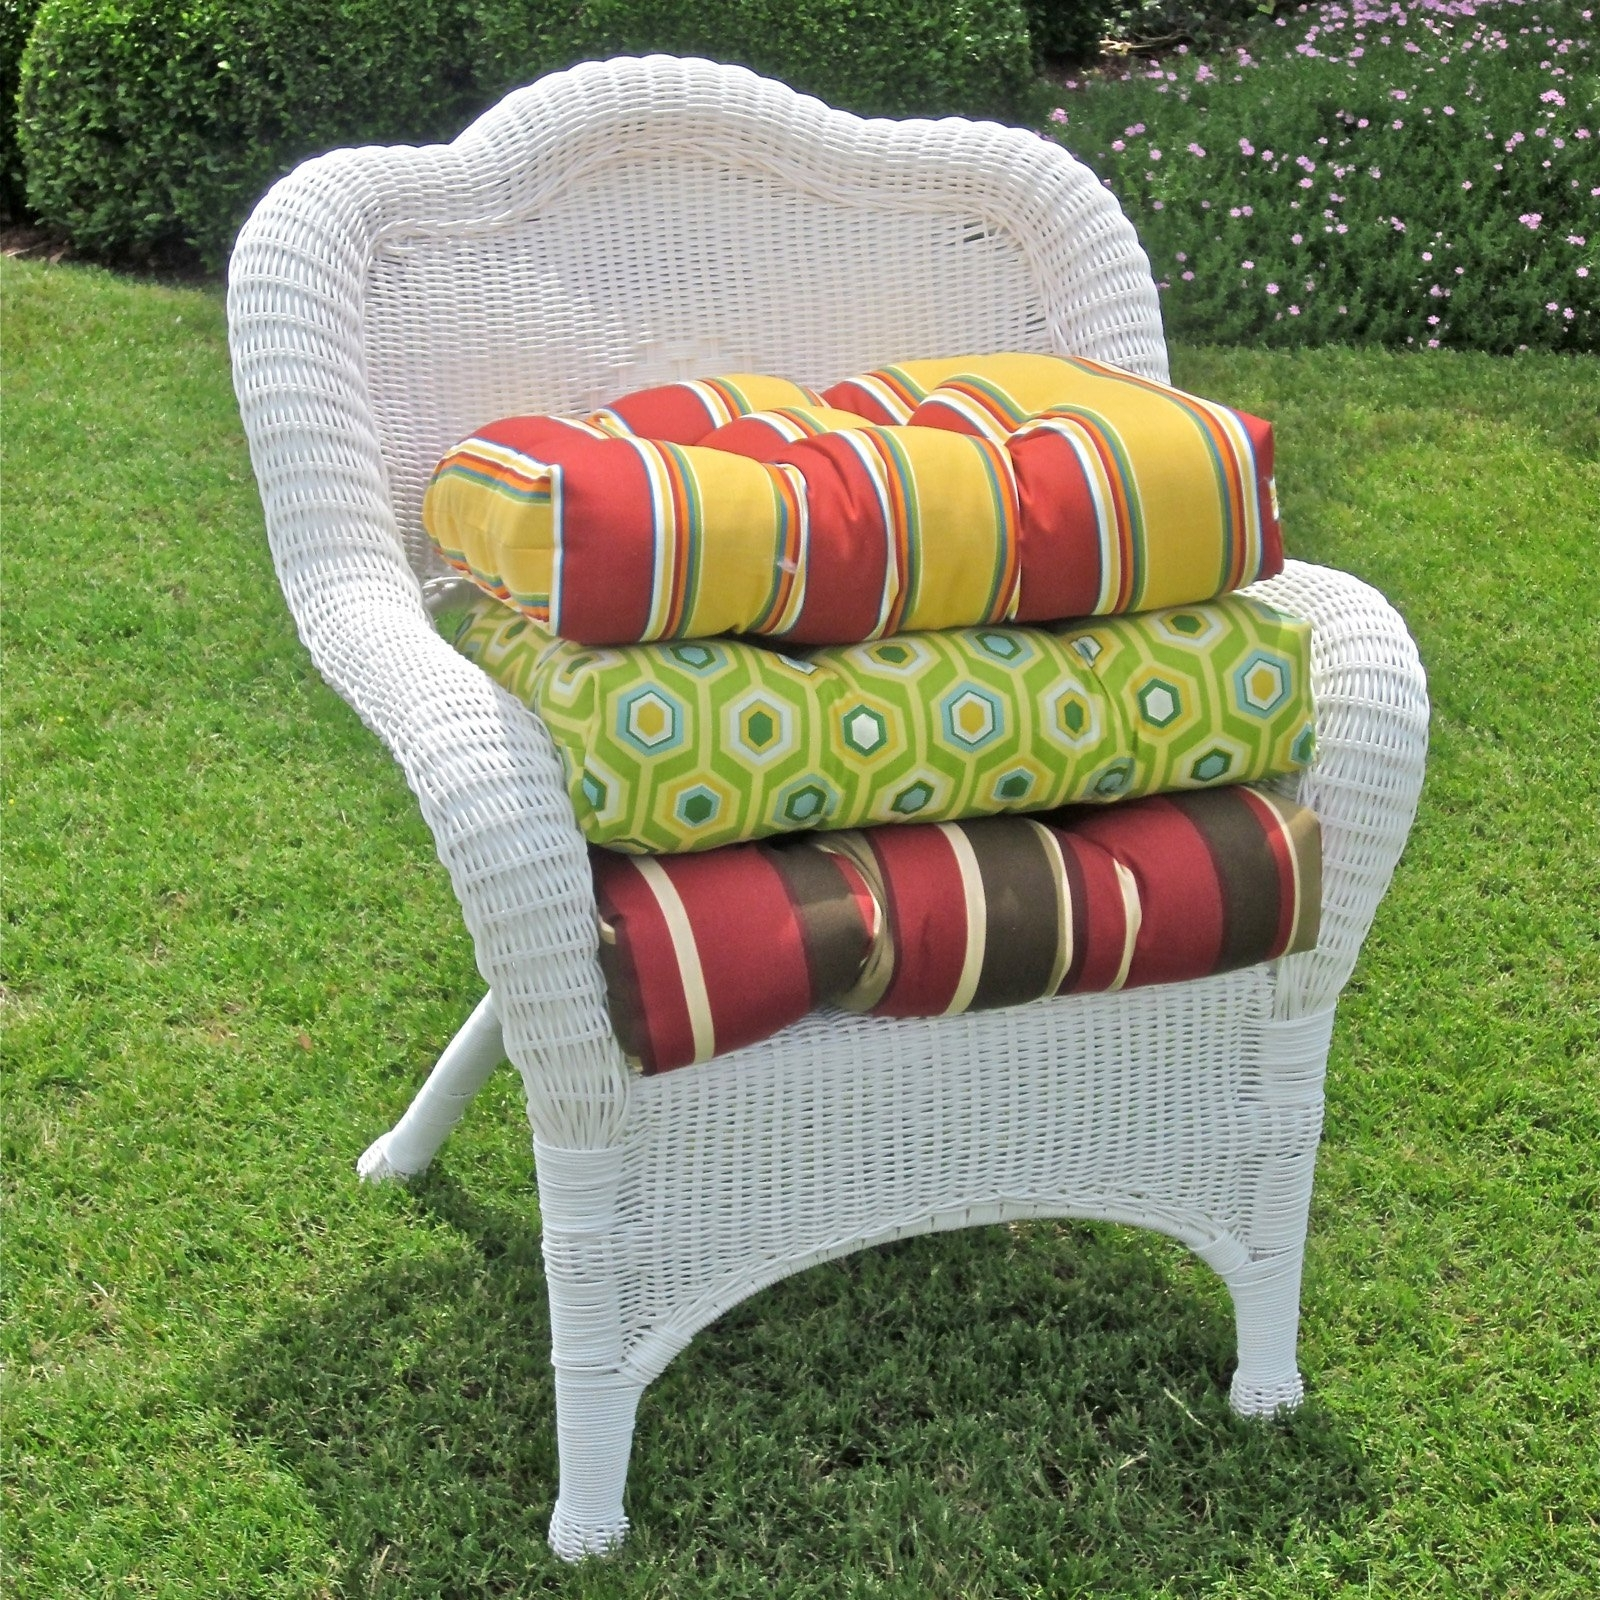 Hayneedle Regarding Outdoor Wicker Rocking Chairs With Cushions (View 6 of 15)